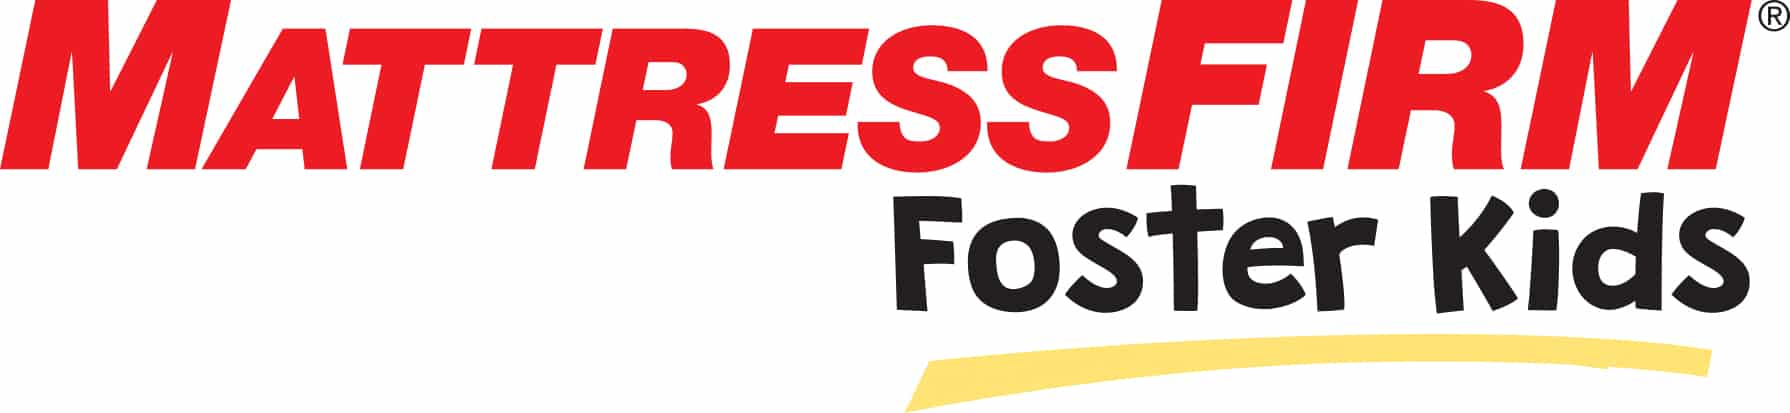 Mattress Firm Foster Kids